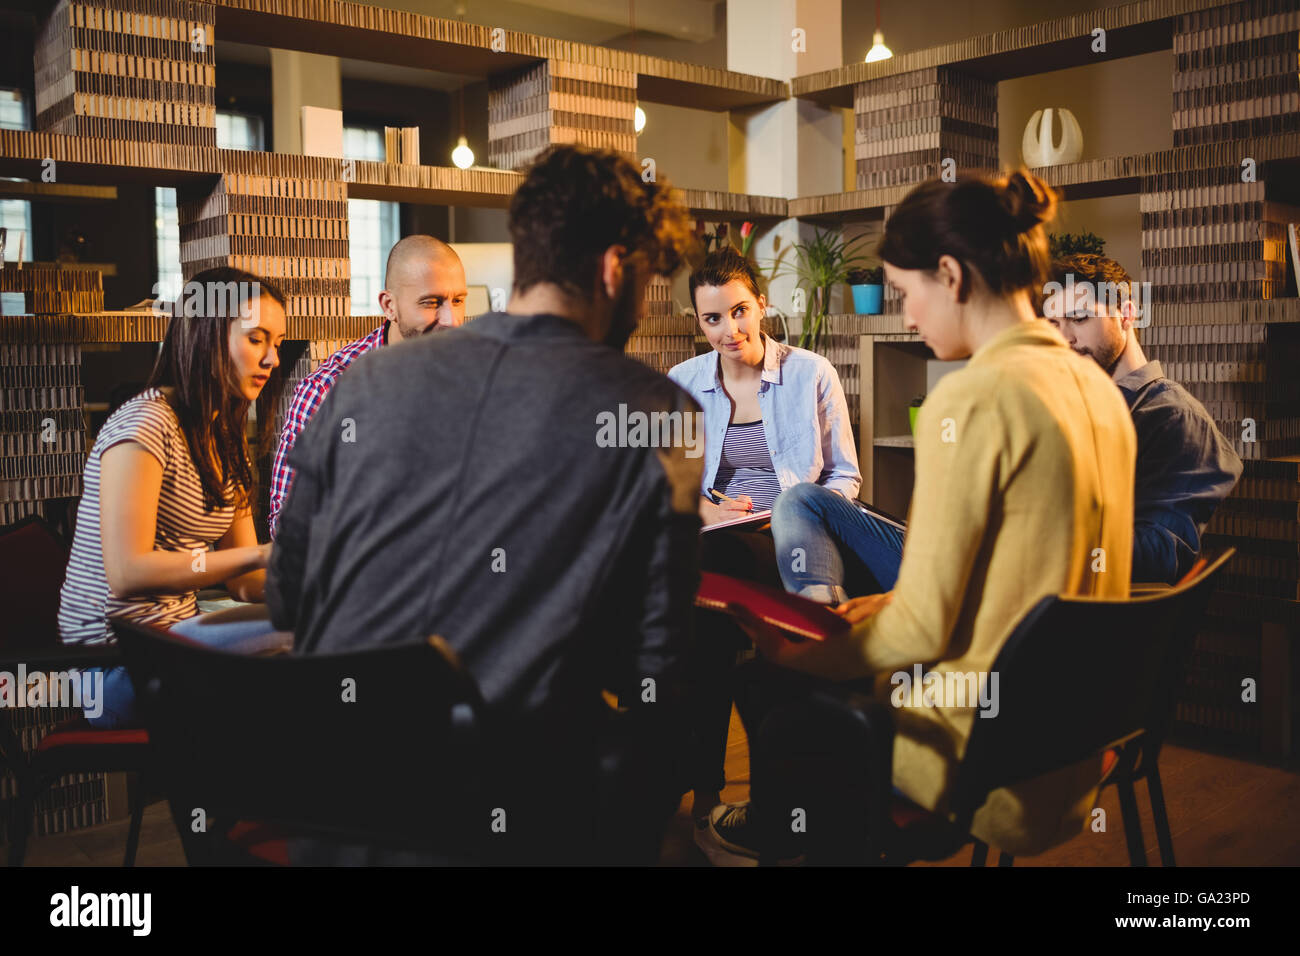 Colleagues having discussion - Stock Image